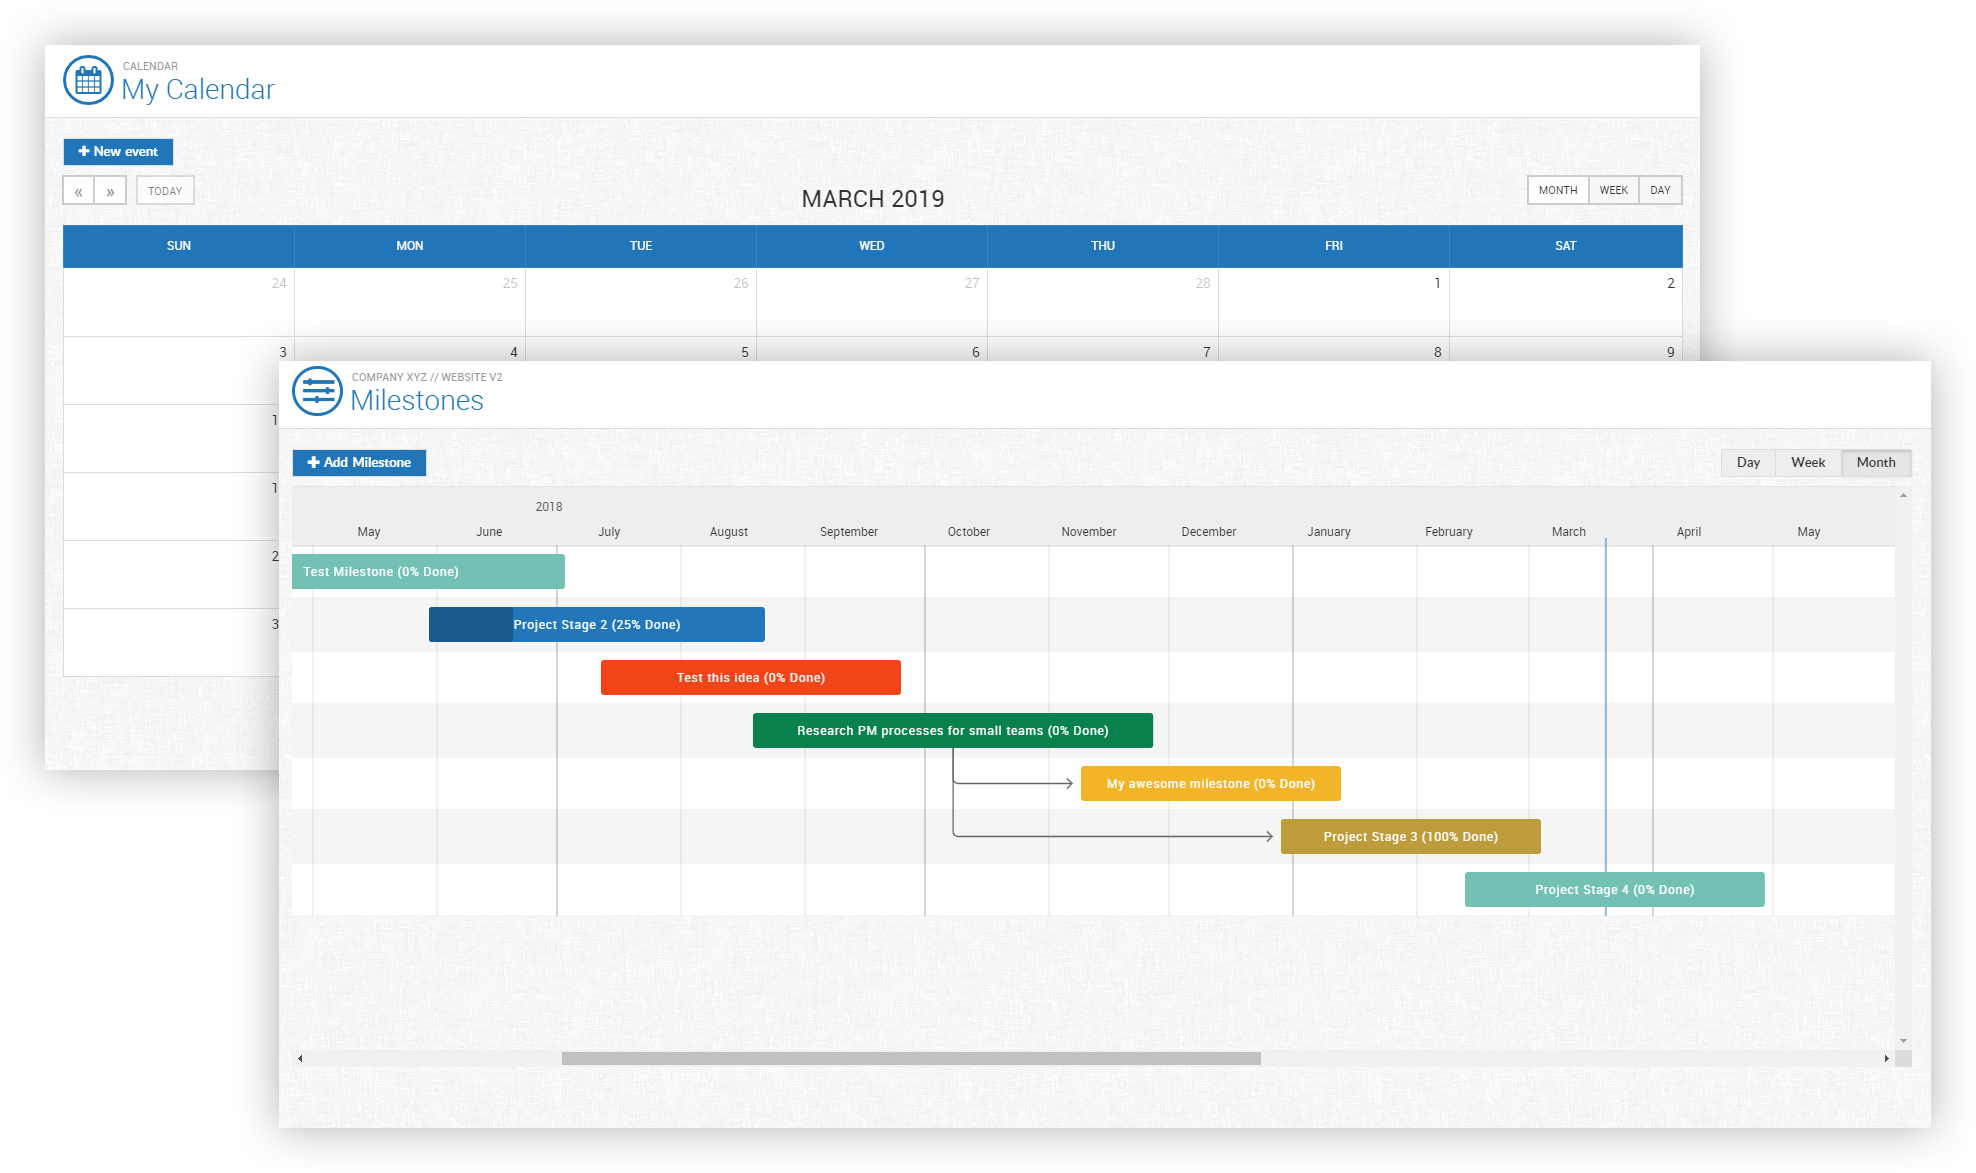 Gantt chart and calendar view of the open source project management system Leantime